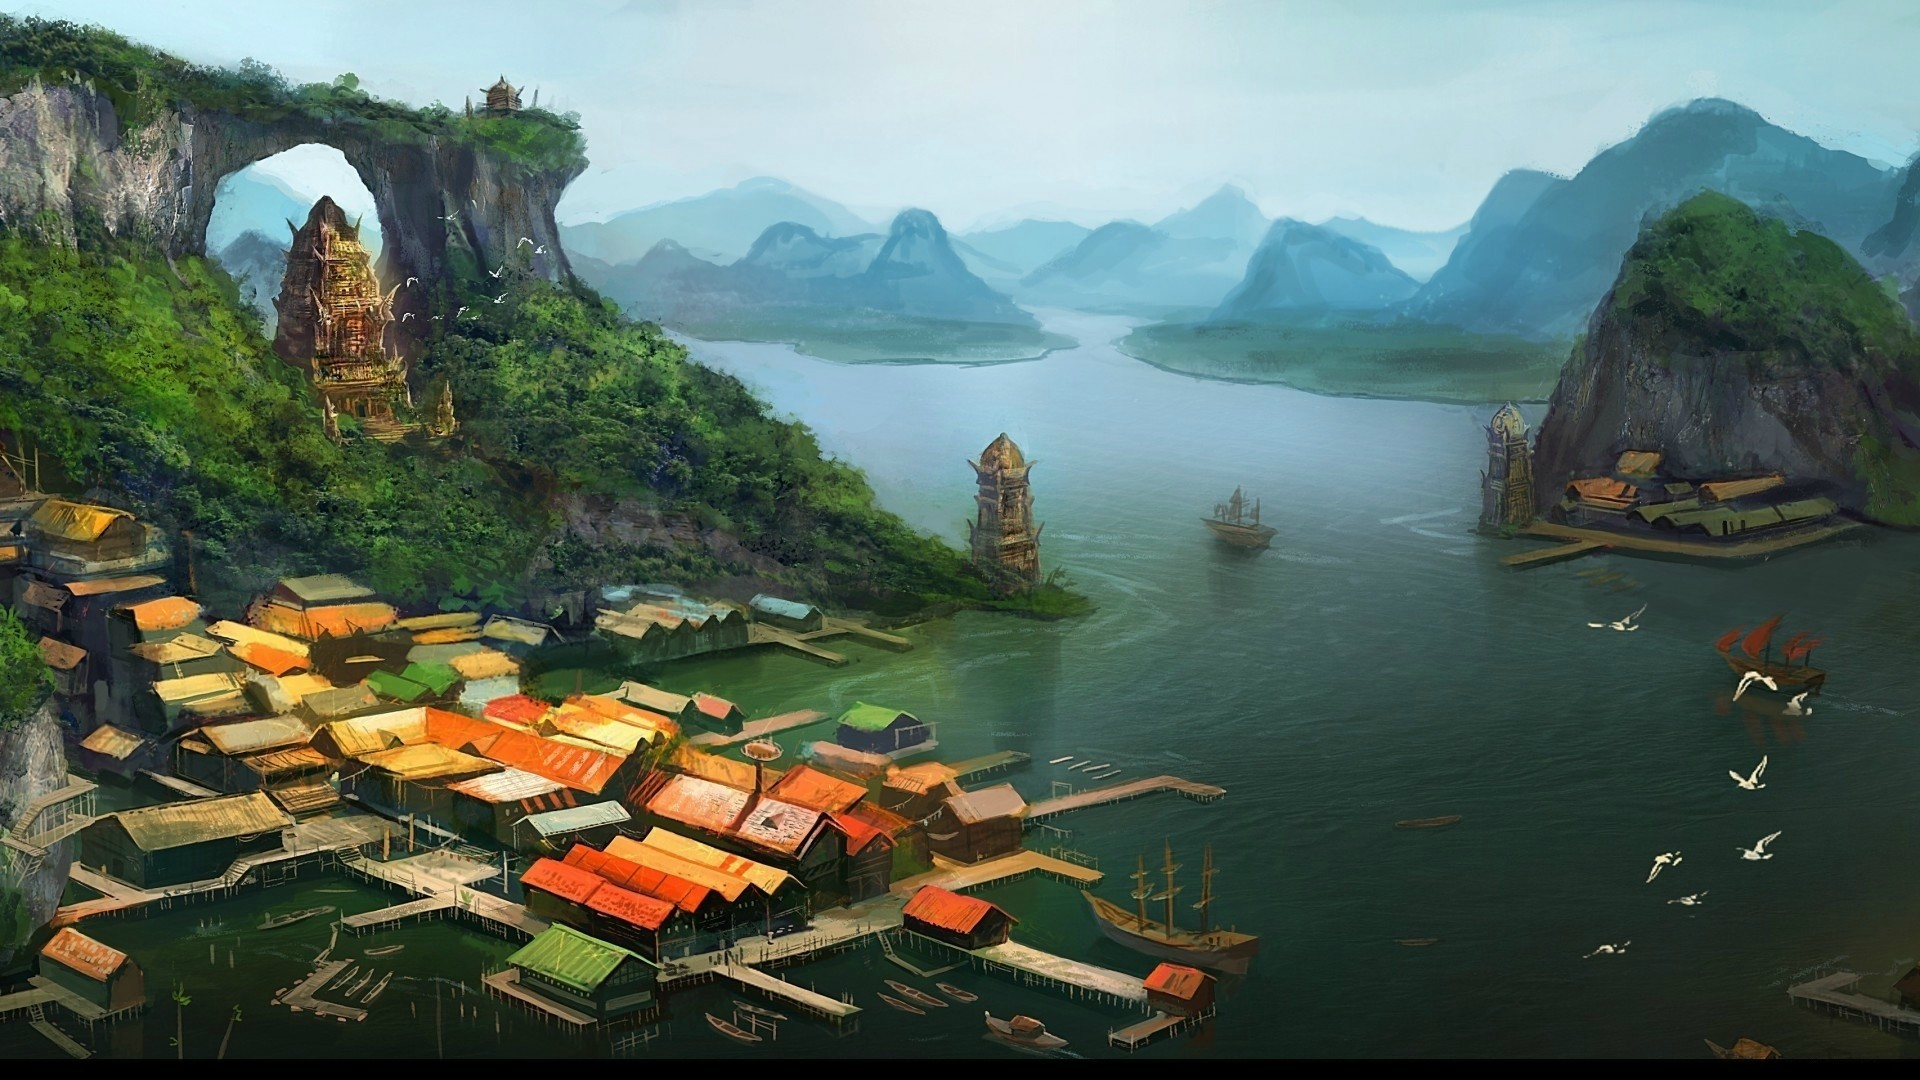 Anime 1920x1080 anime ports fantasy art architecture building house artwork painting rooftops village lake mountains birds pier tower ship trees